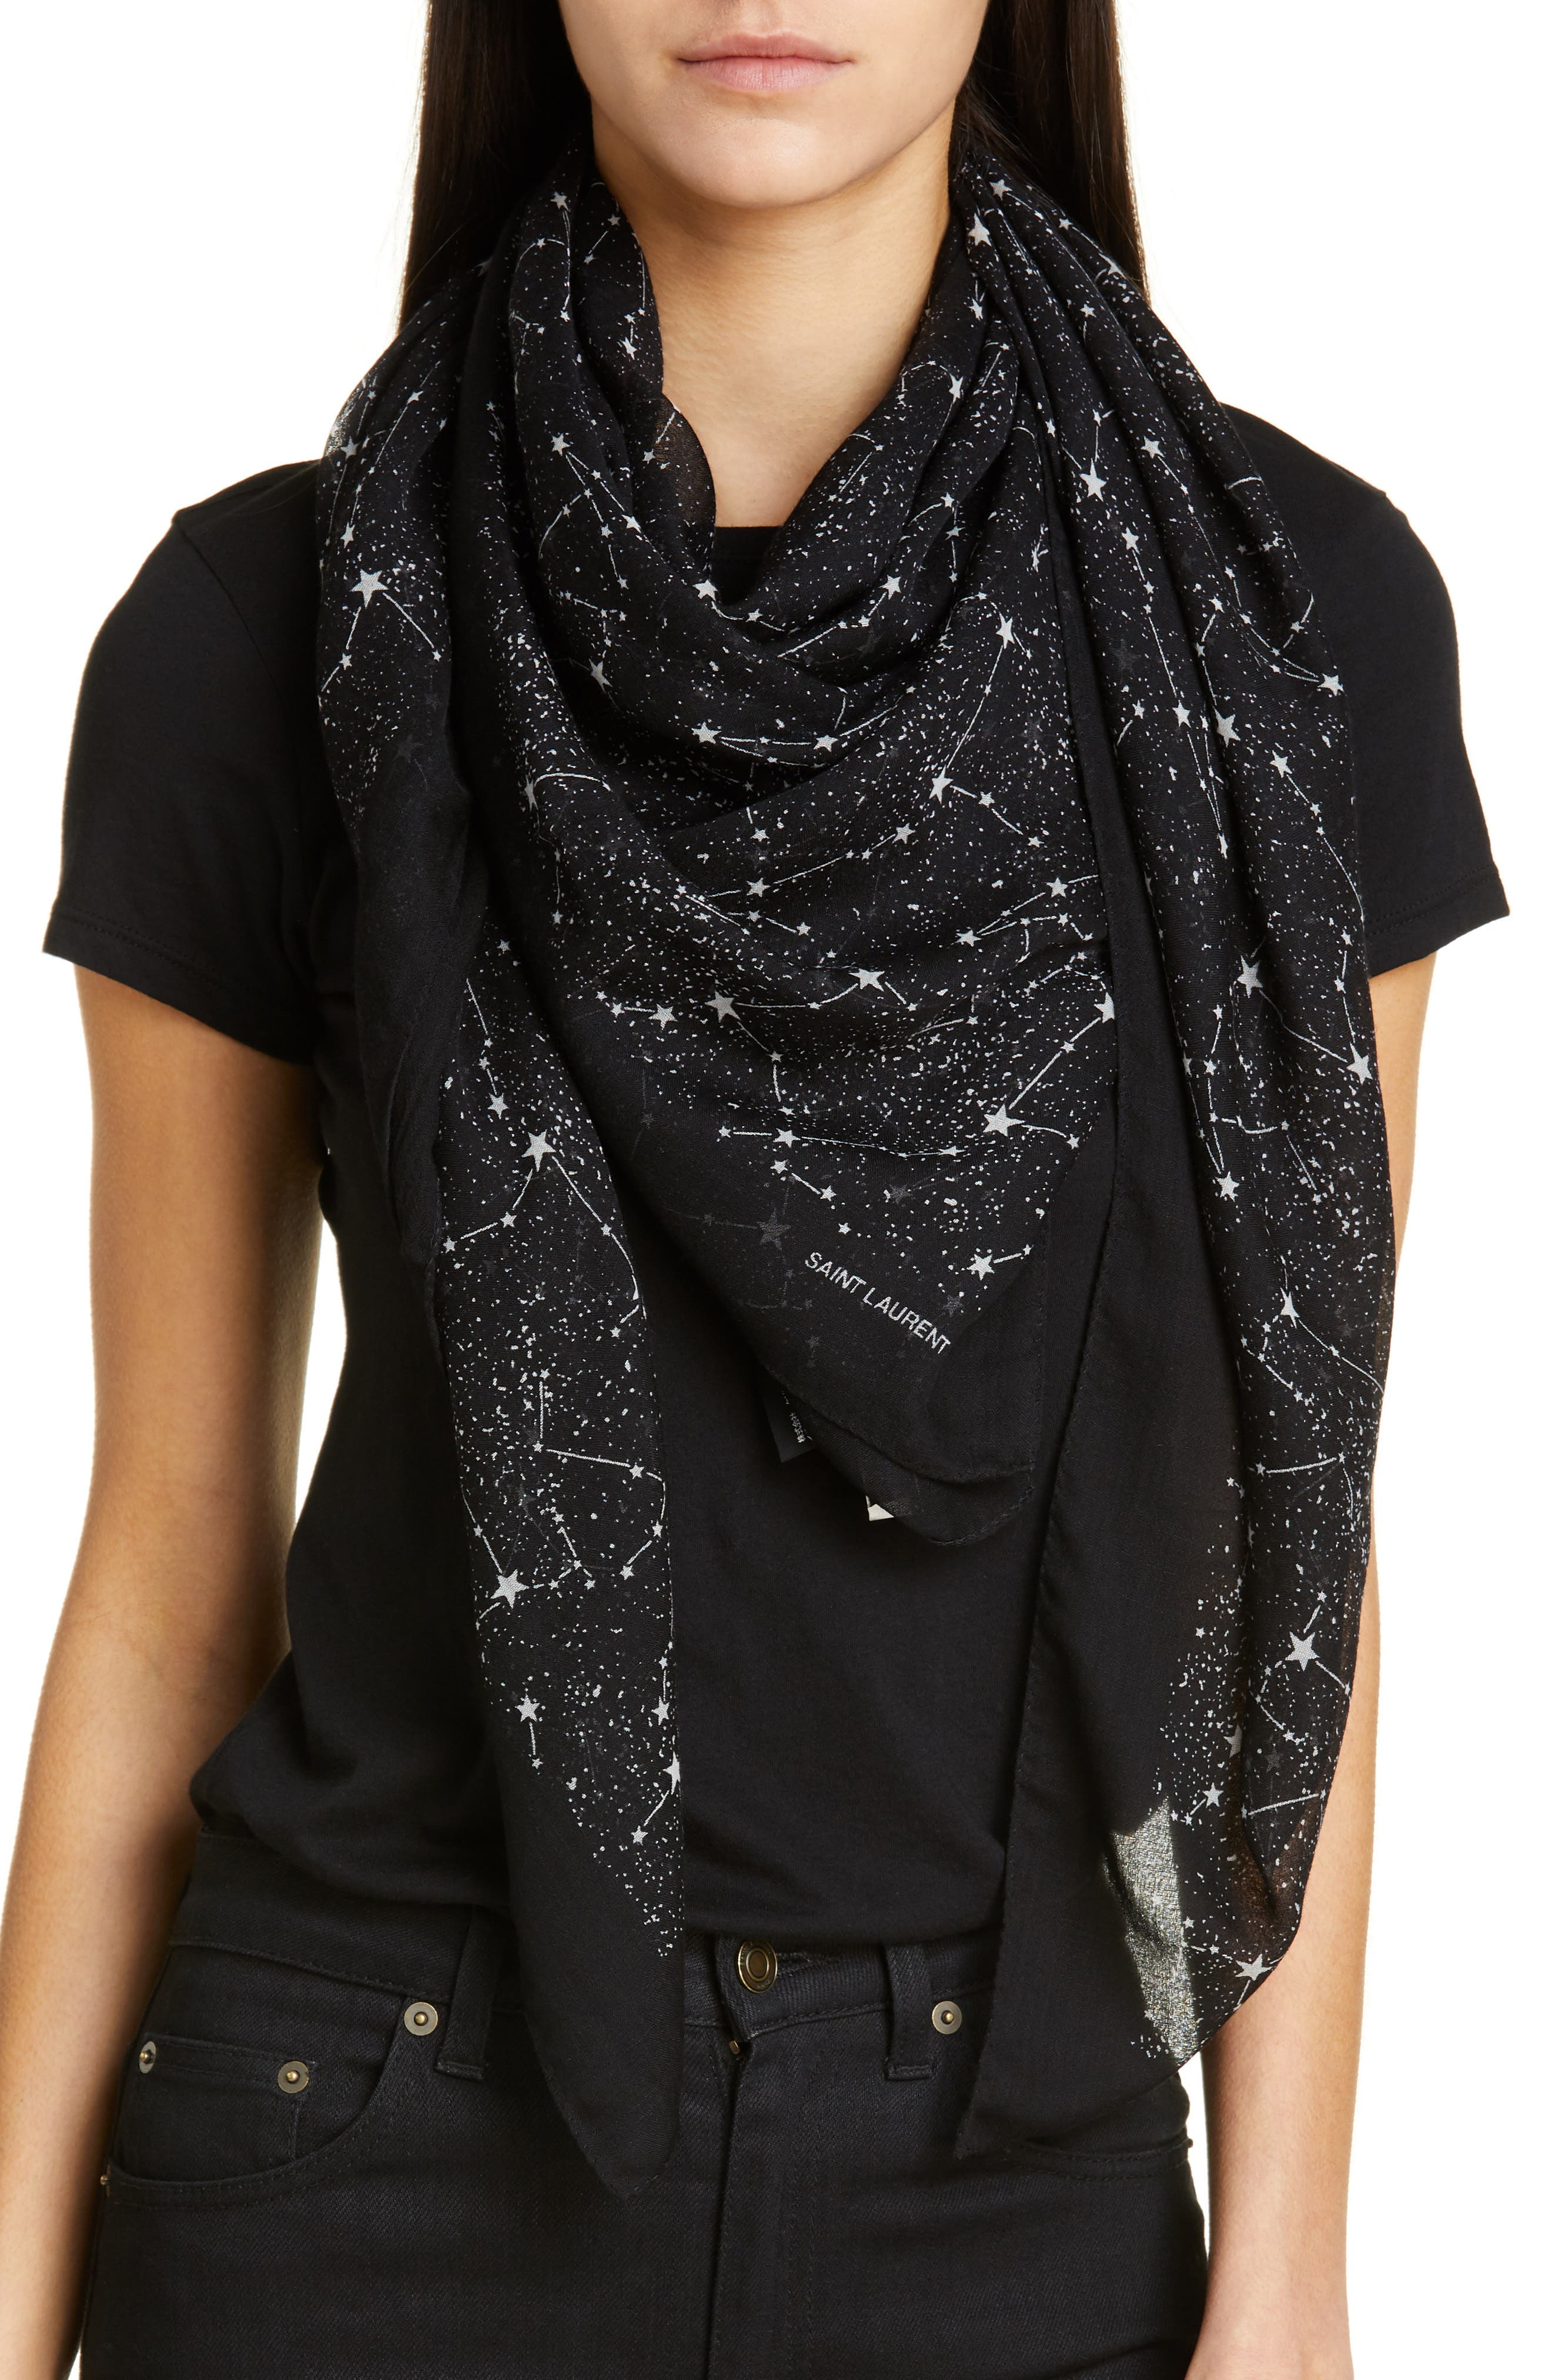 SAINT LAURENT,                             Constellation Square Wool Scarf,                             Alternate thumbnail 2, color,                             BLACK/ IVORY